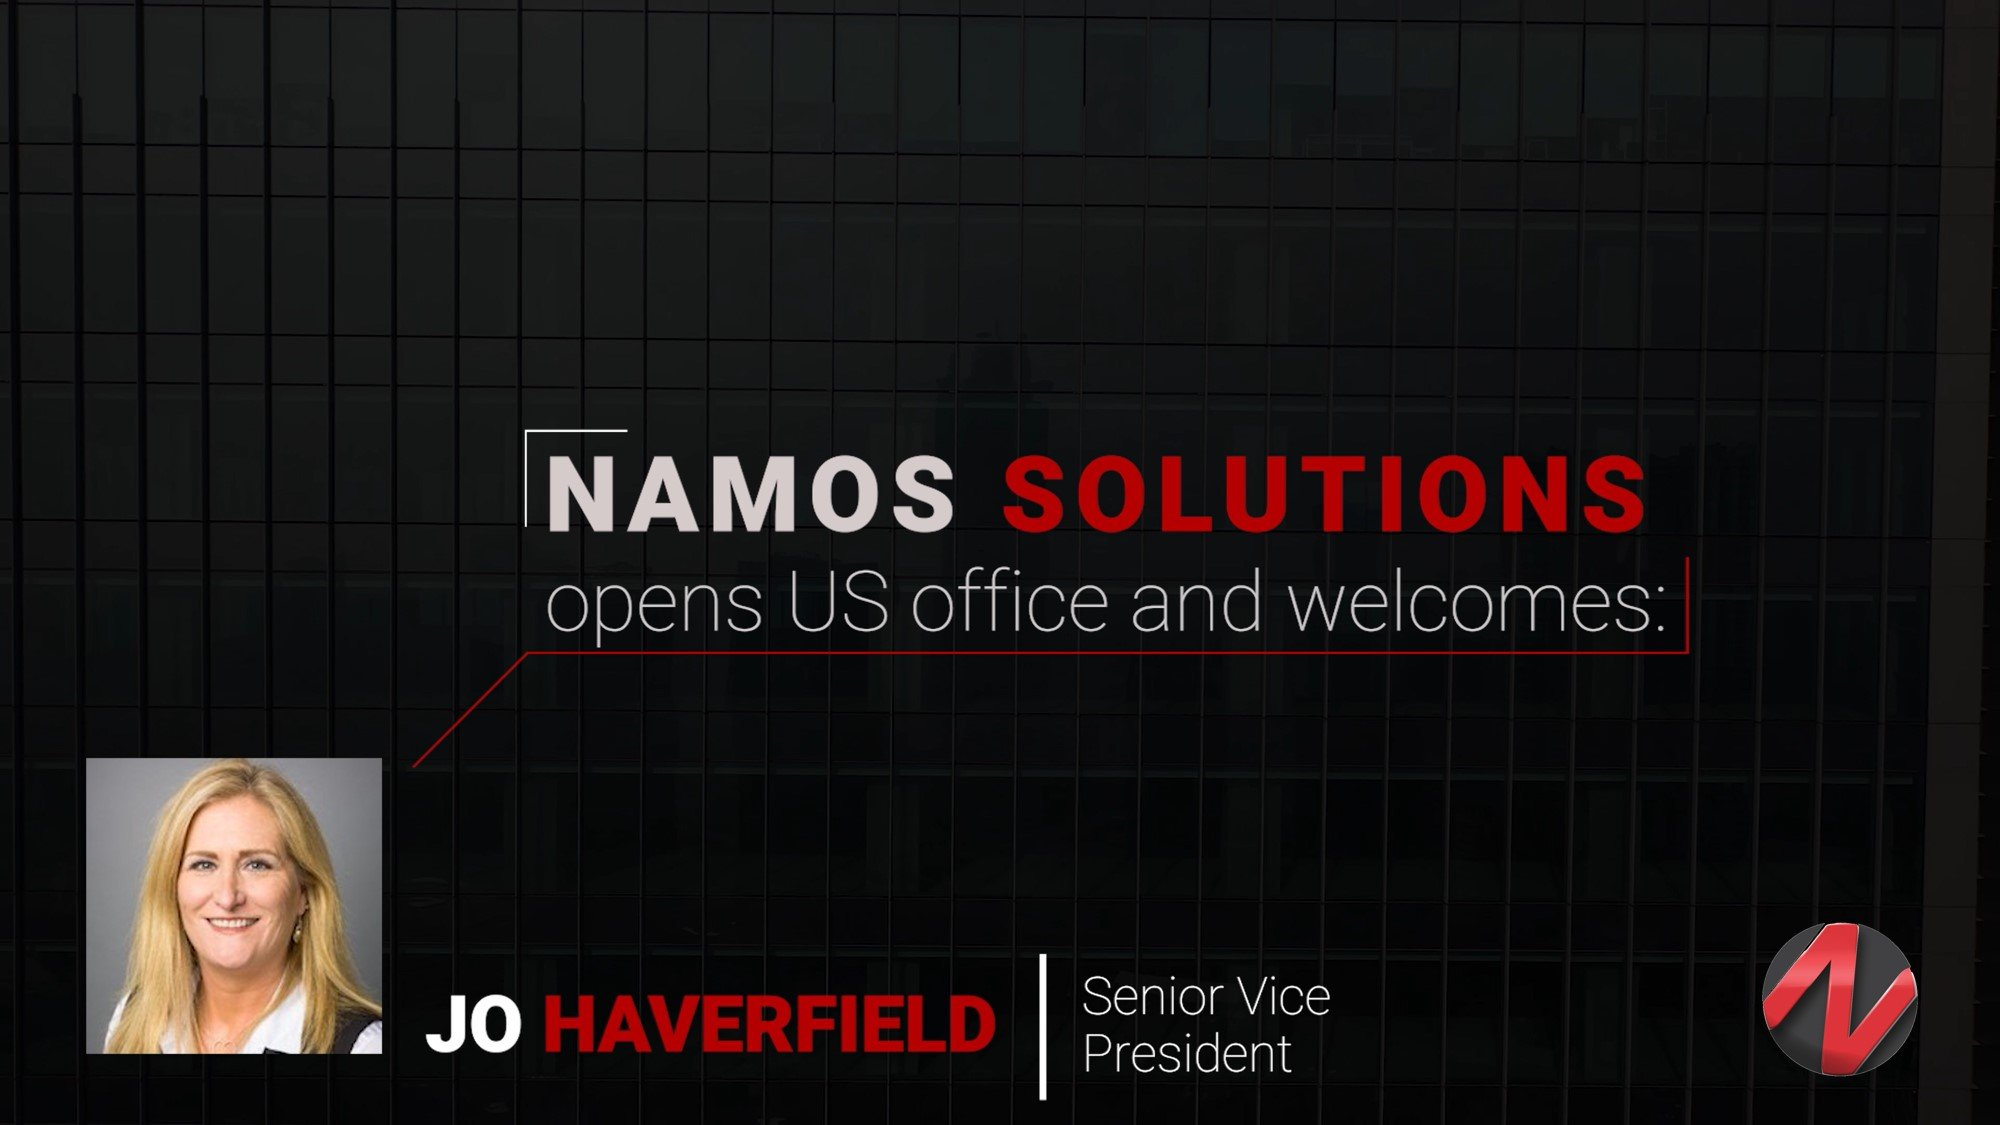 Namos Solutions open US office and welcomes Jo Haverfield as Senior Vice President